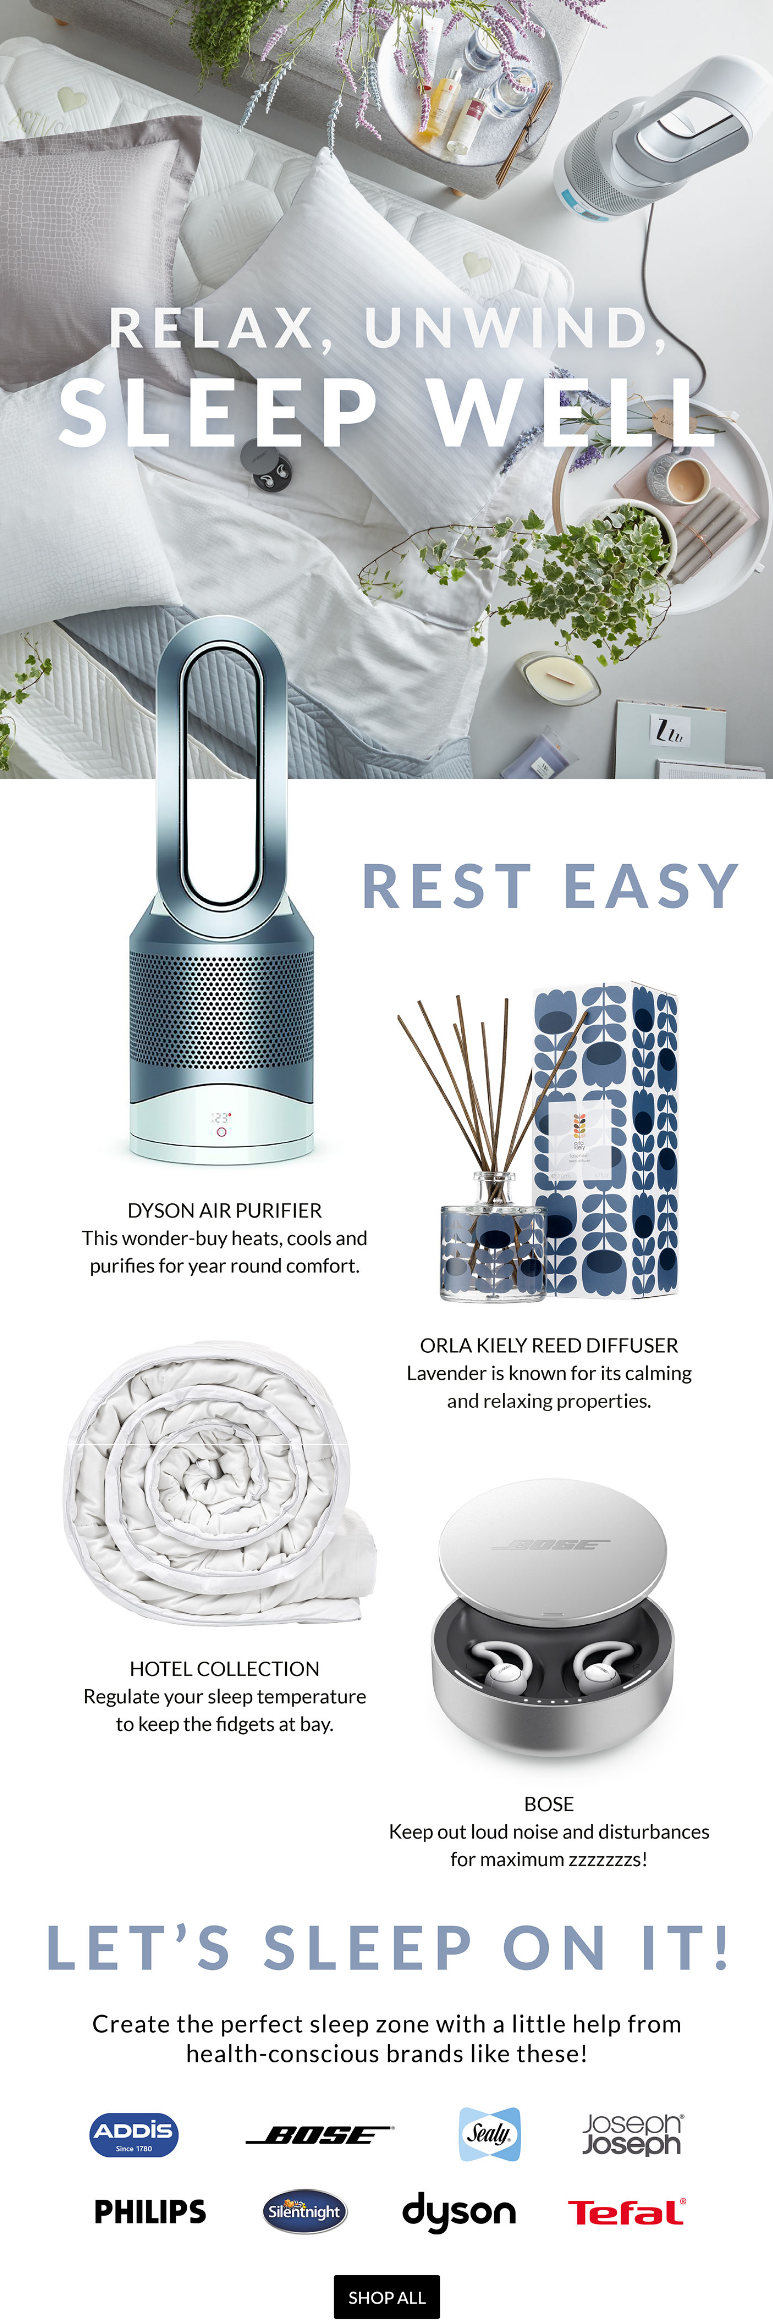 Create the perfect sleep zone with a little help from health-conscious brands like these!